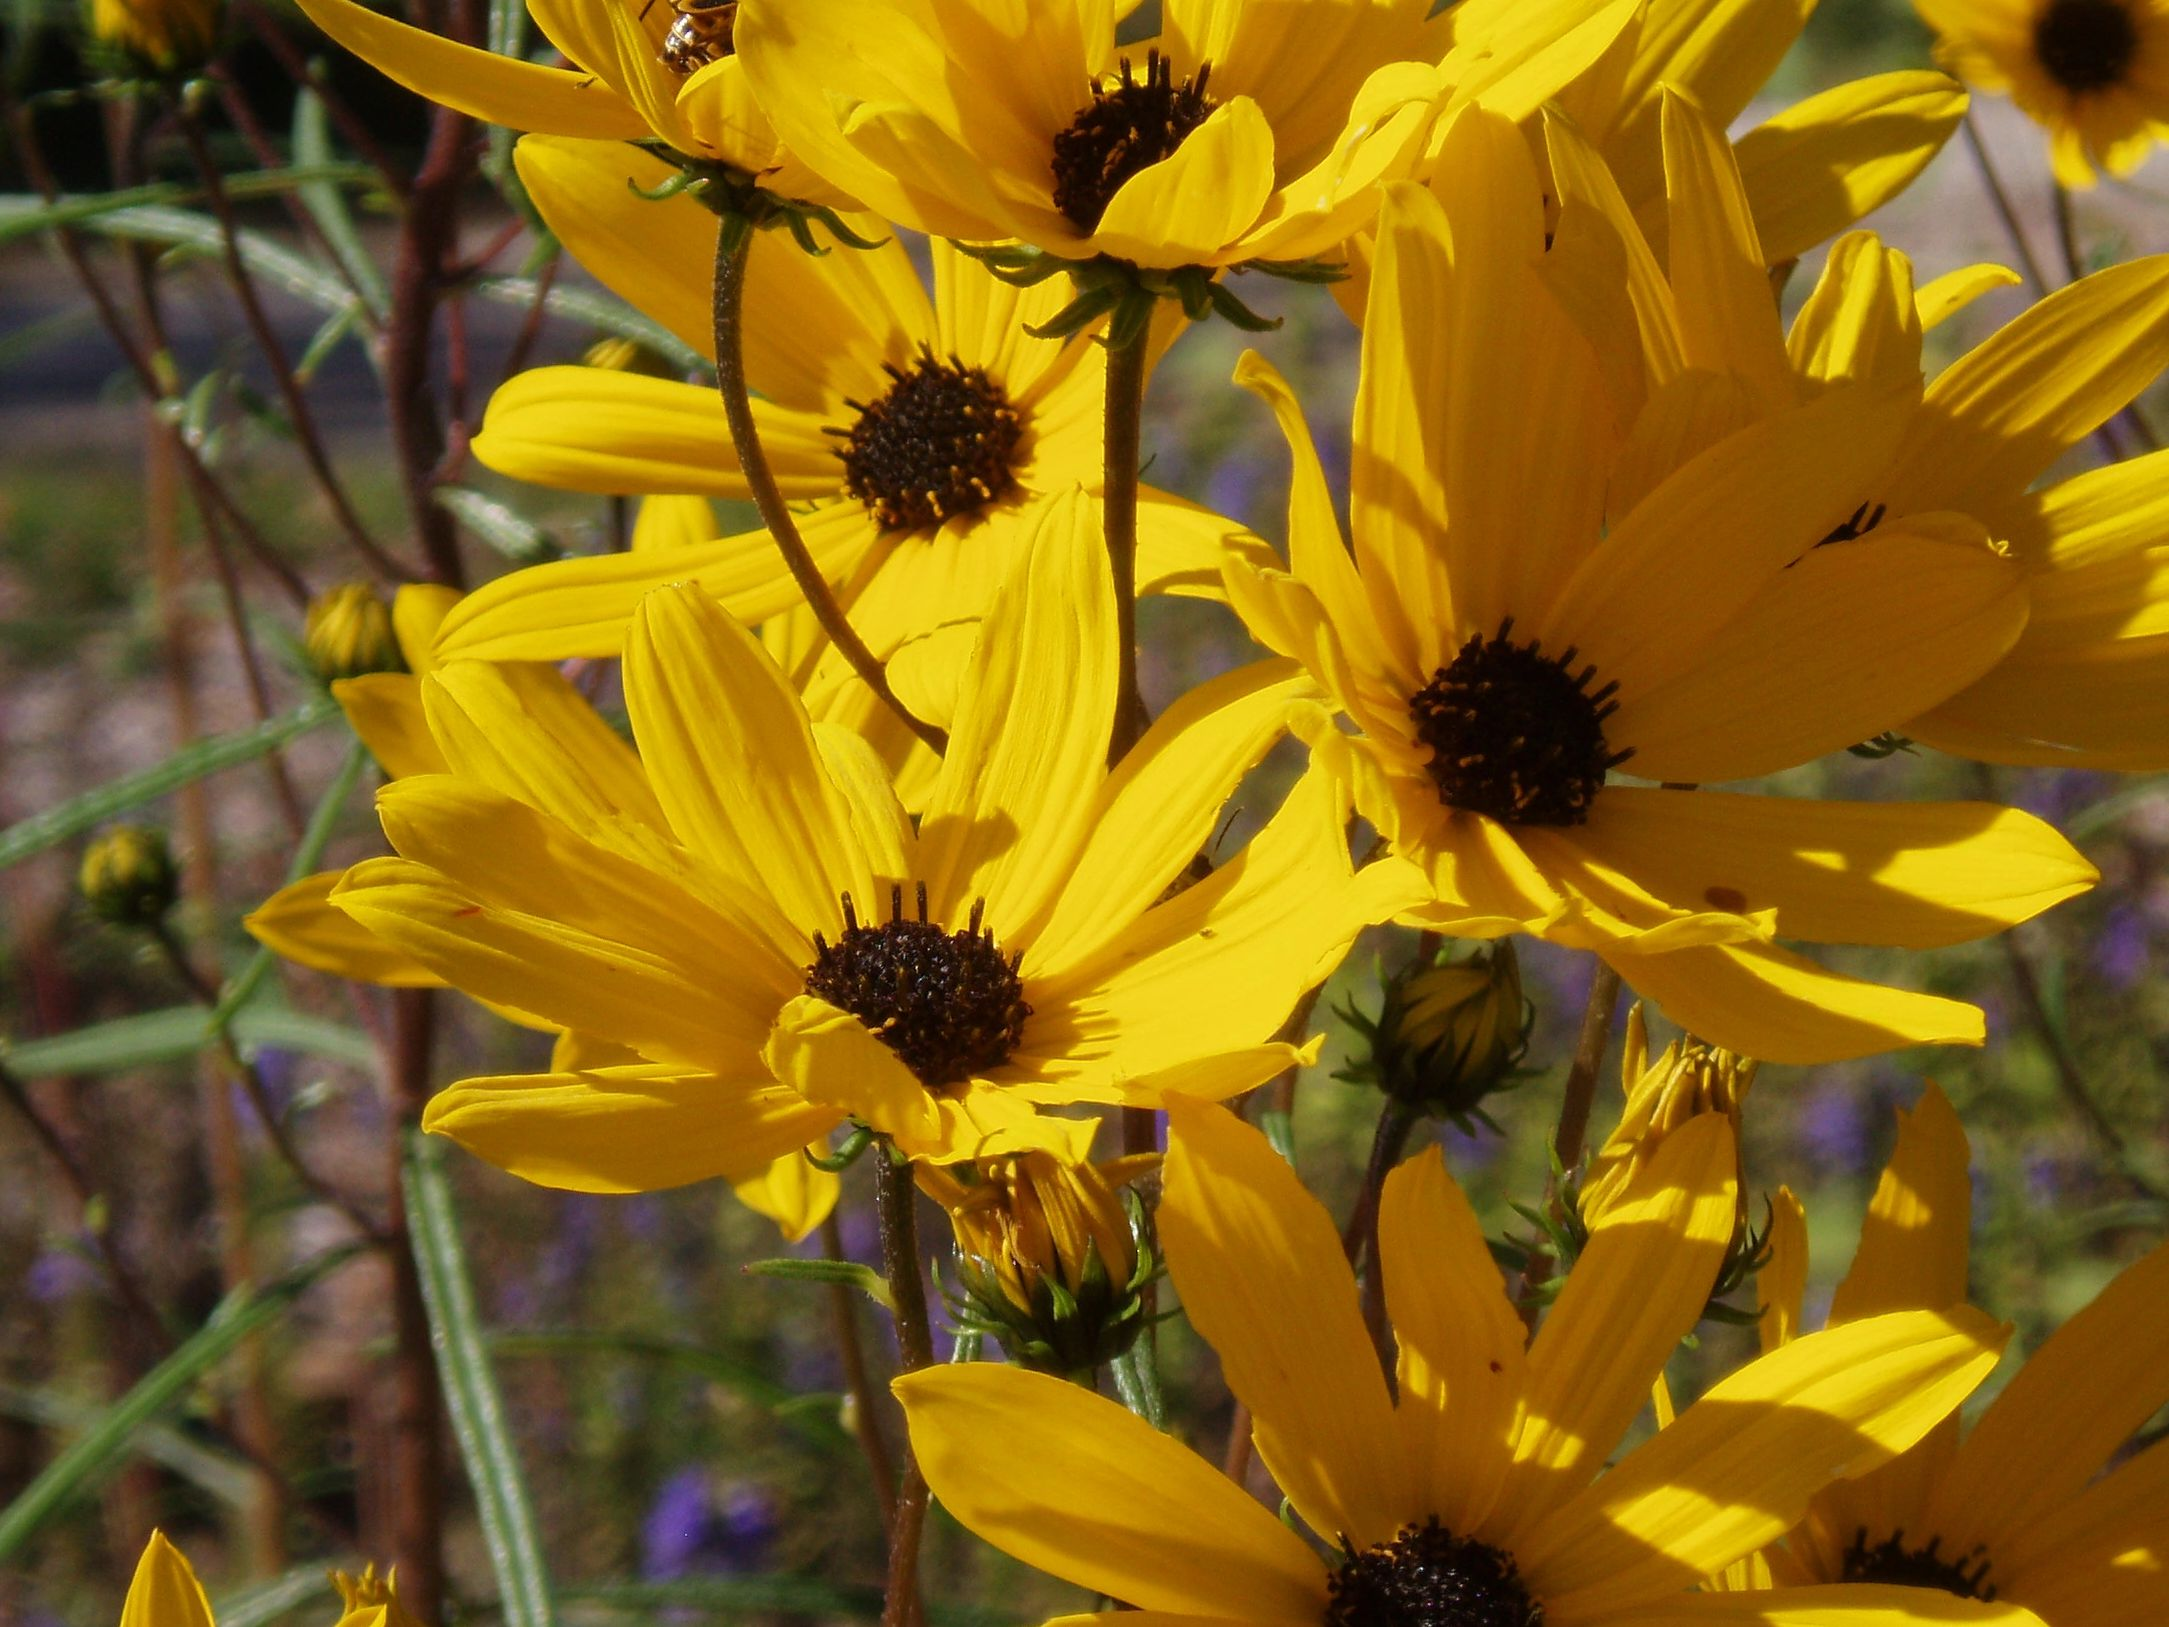 "{""blocks"":[{""key"":""99o91"",""text"":"" Helianthus angustifolius Swamp Sunflower -  potted plants john@easywildflowers.com  "",""type"":""unstyled"",""depth"":0,""inlineStyleRanges"":[],""entityRanges"":[],""data"":{}}],""entityMap"":{}}"